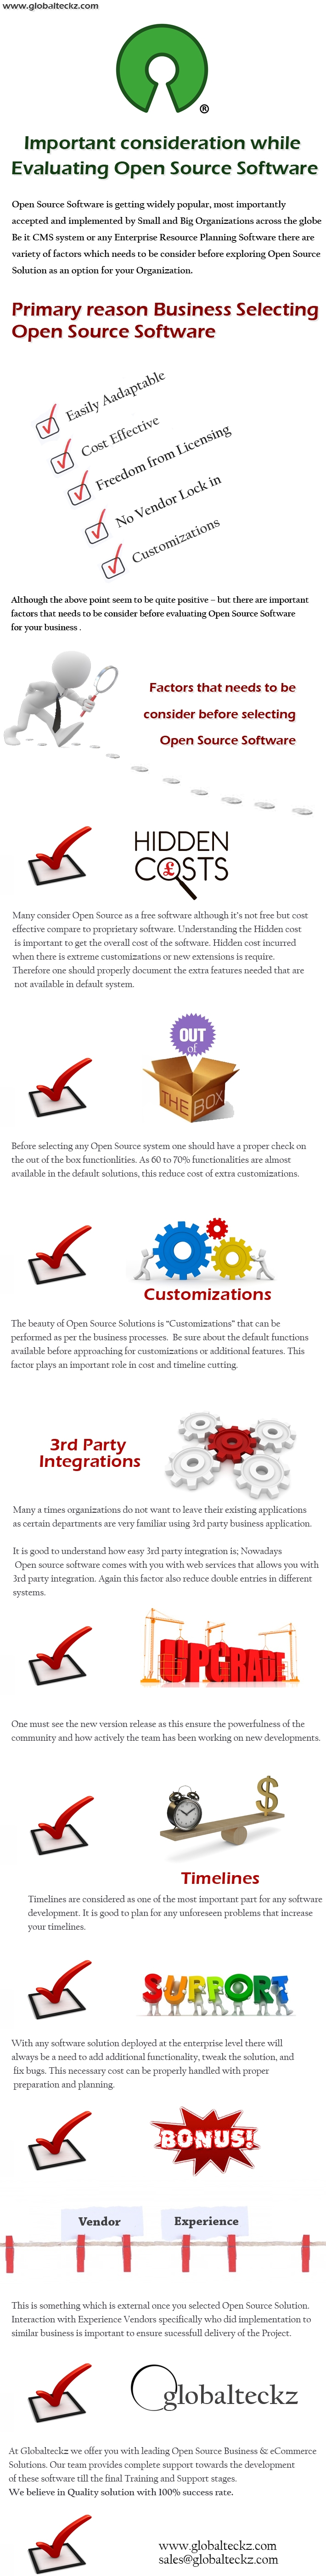 best open source software, key consideration for open source, IMPORTANT CONSIDERATION WHILE EVALUATING OPEN SOURCE SOFTWARE – INFOGRAPHICS